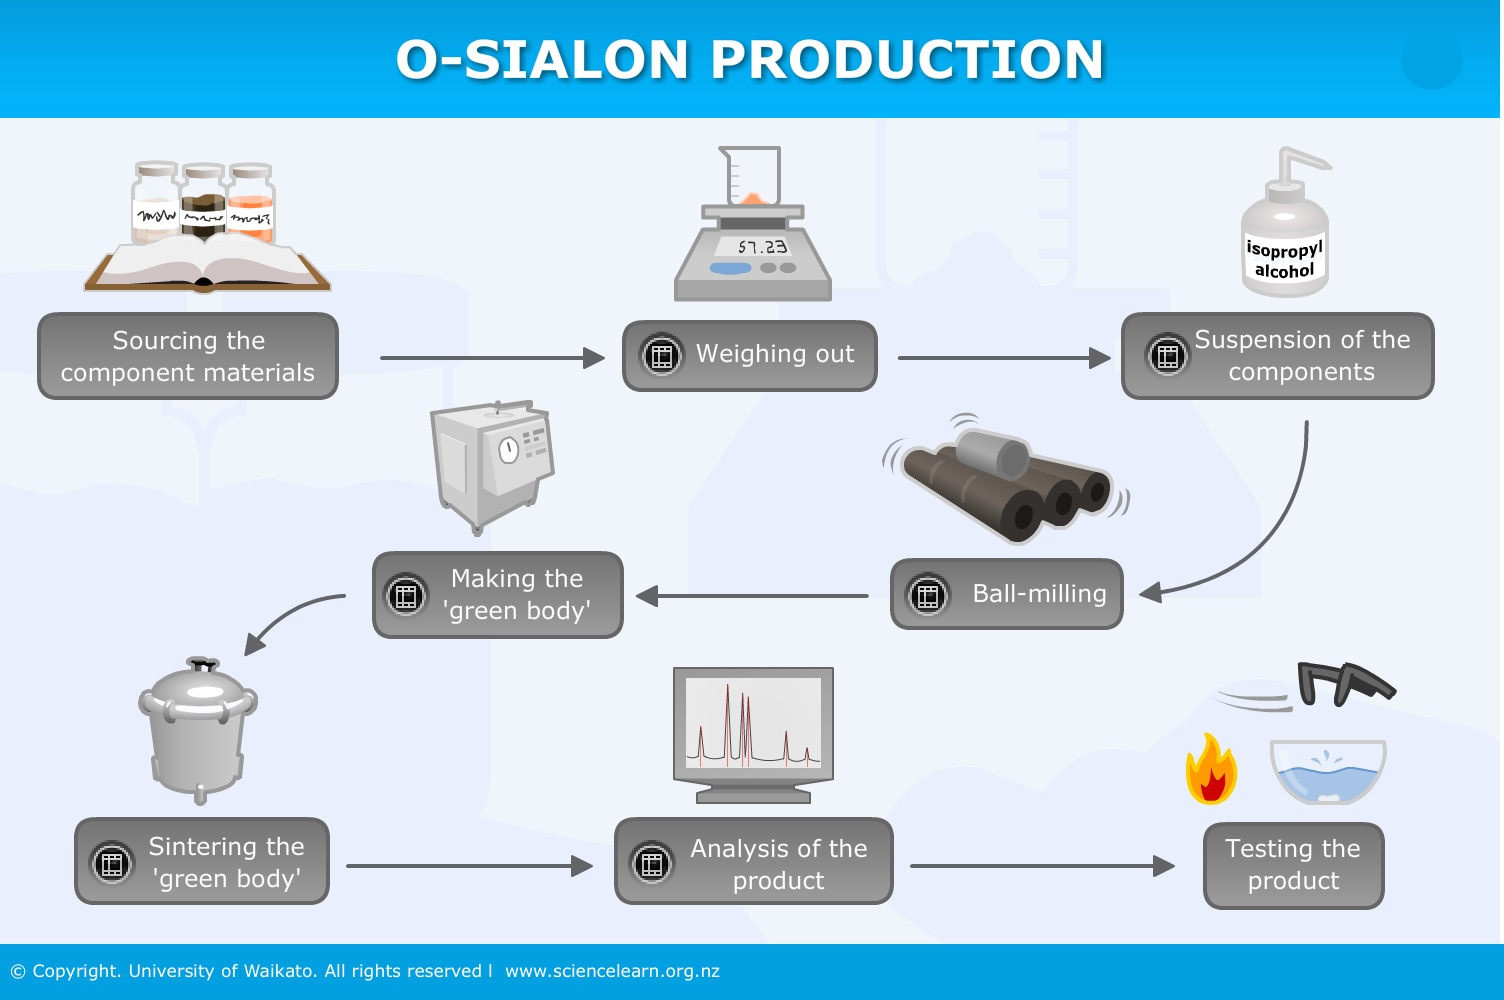 O-Sialon production